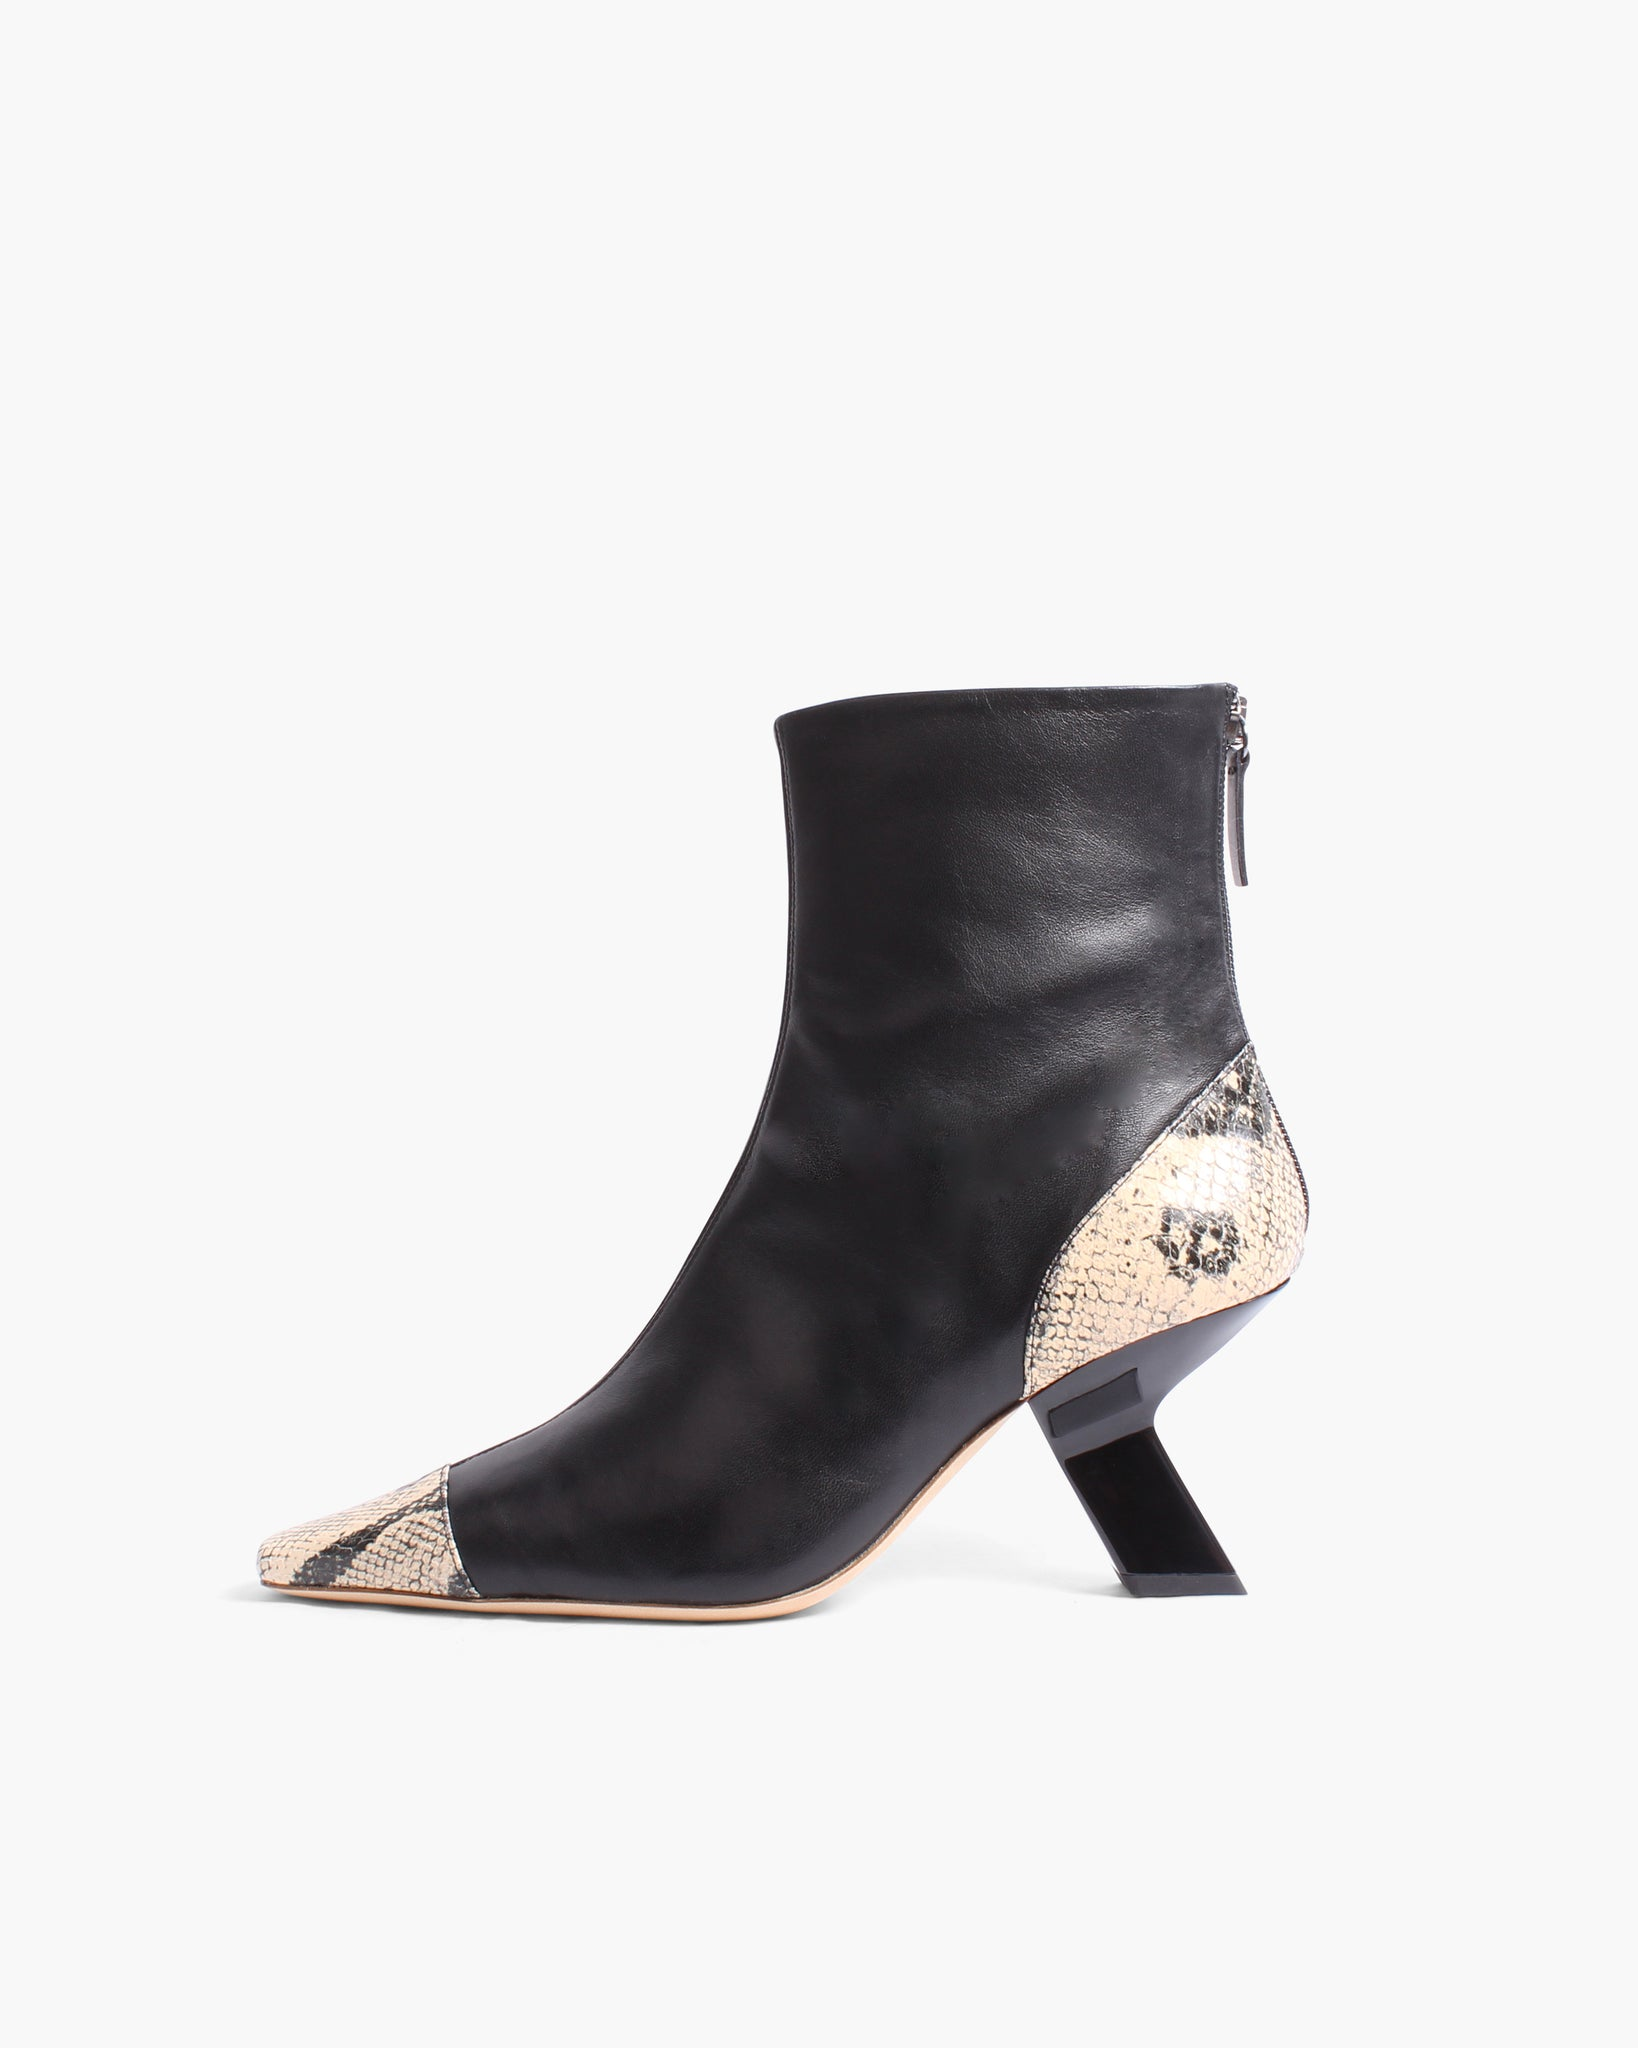 Marley Boots Leather Black + Print Boa Beige - SPECIAL PRICE